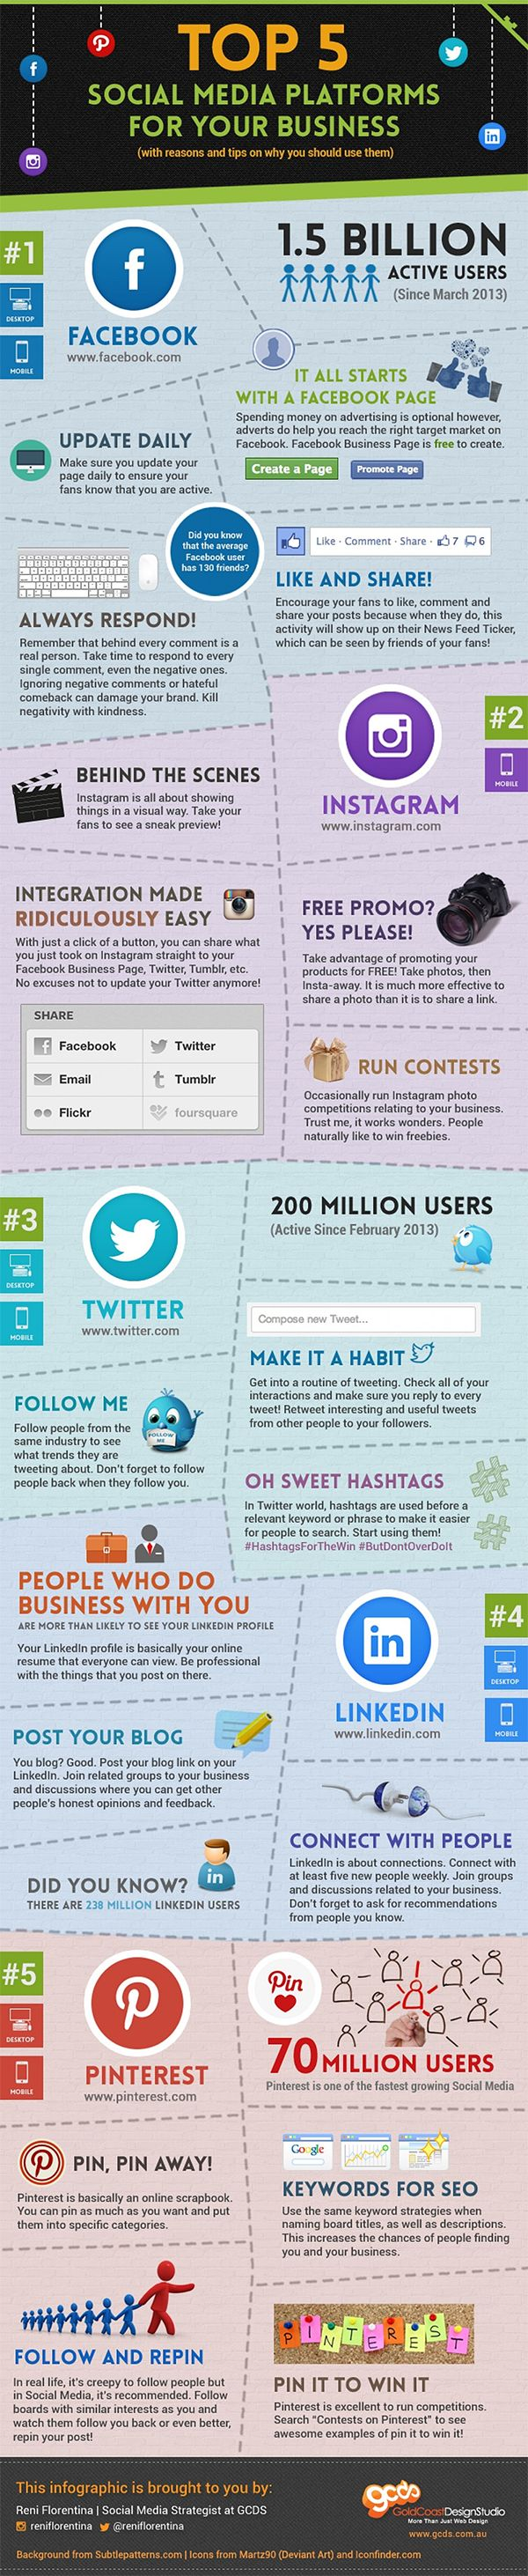 The Top 5 Social Media Platforms You Should be Using to Market Your Business #Facebook #Twitter #LinkedIn #Instagram #Flickr #infographicBusiness Tips, Infographic Socialmedia, Social Media Marketing, Socialmedia Platform, Small Businesses, Social Networks, Socialmedia Business, Medium, Business Infographic